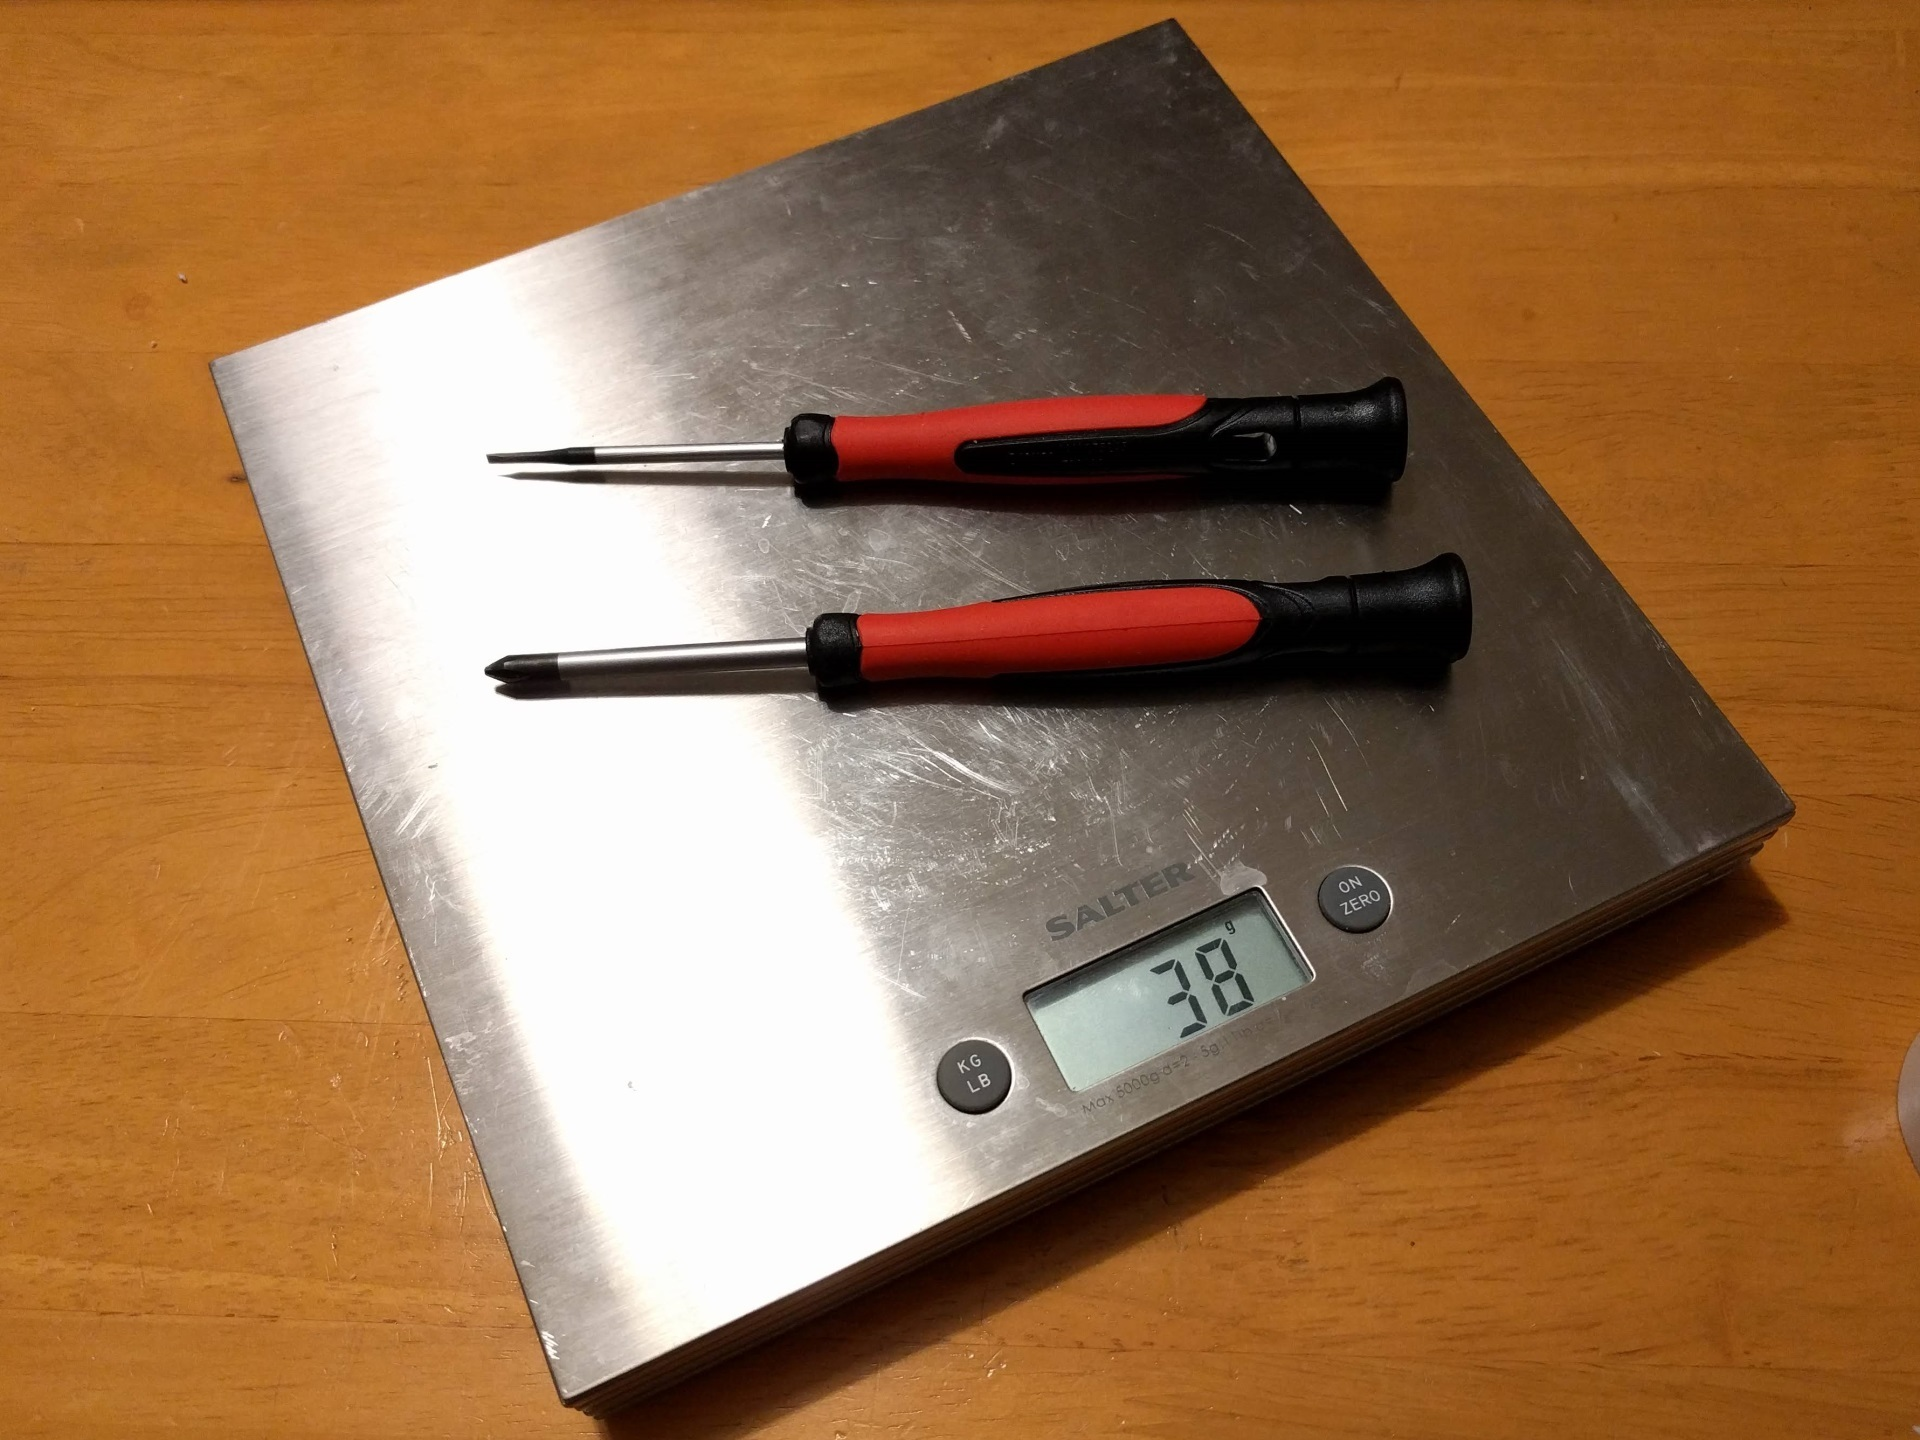 image1.jpg Download free STL file Replacement Feet for Salter Digital Kitchen Scales • 3D printing object, peaberry